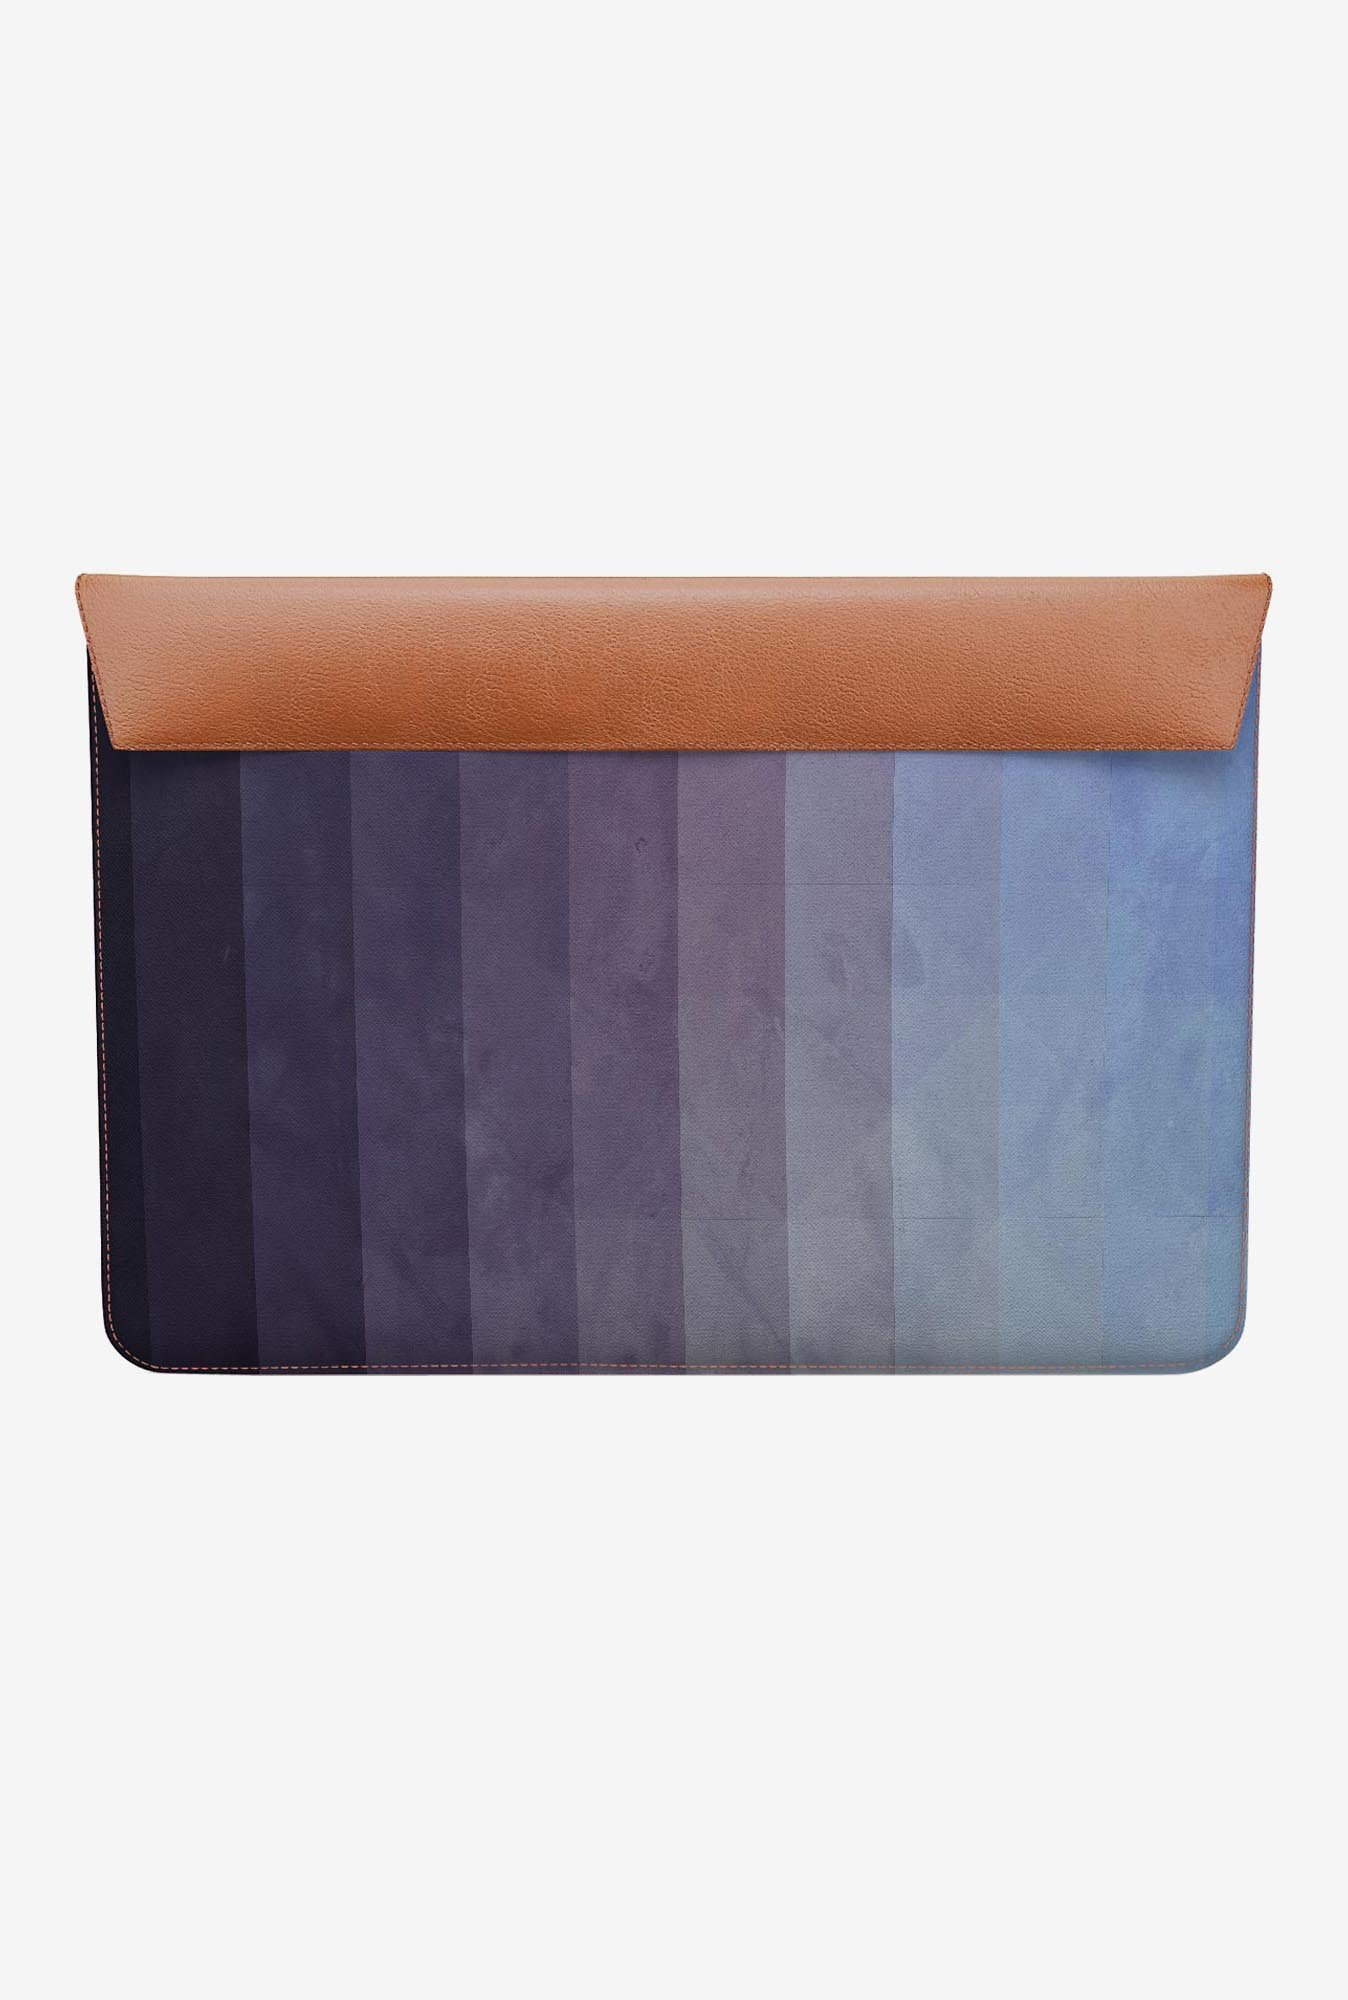 "DailyObjects Myssyng Yww Macbook Air 11"" Envelope Sleeve"